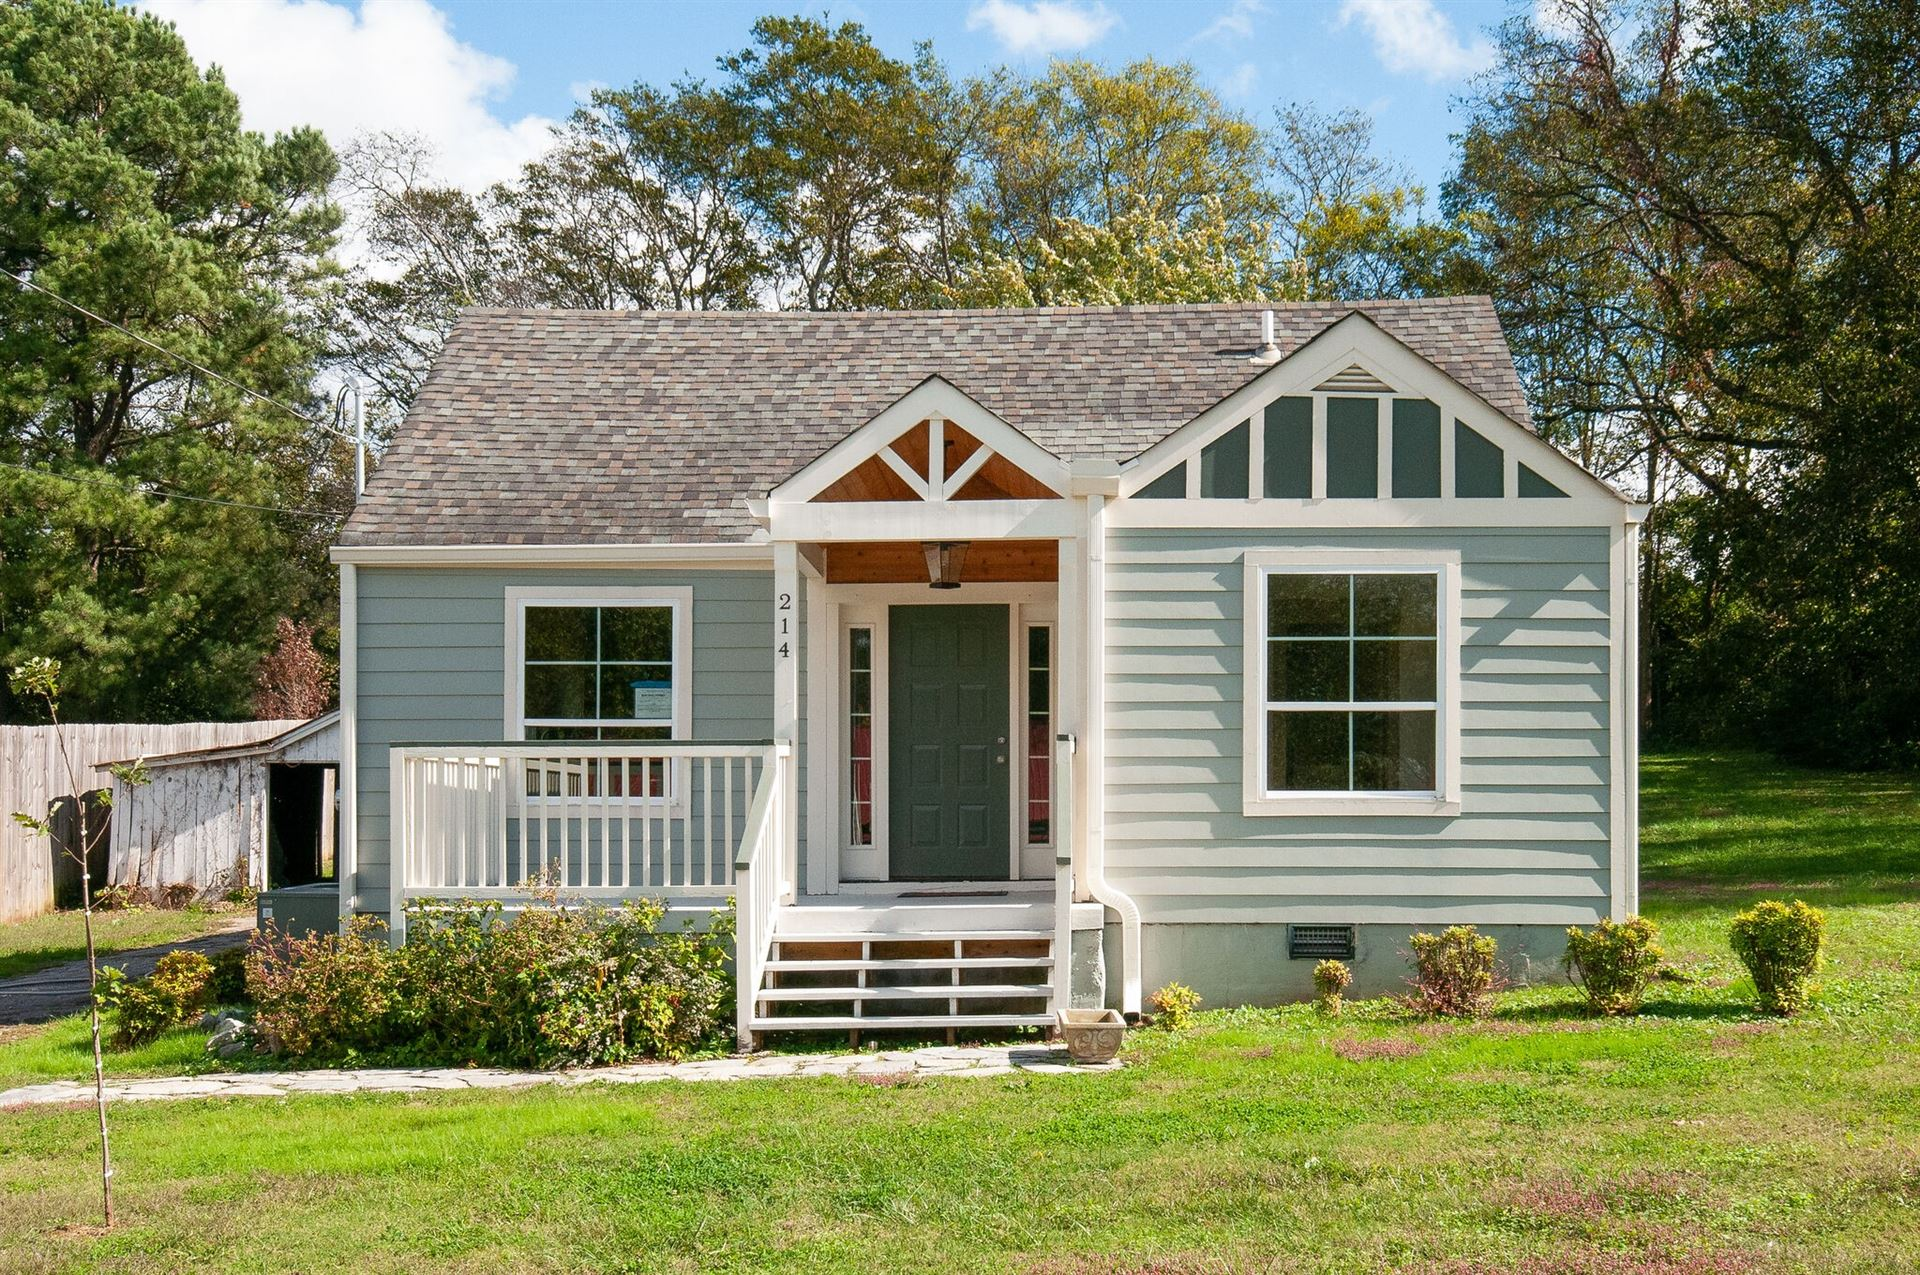 214 Anthony Ave, Old Hickory, TN 37138 - MLS#: 2303553